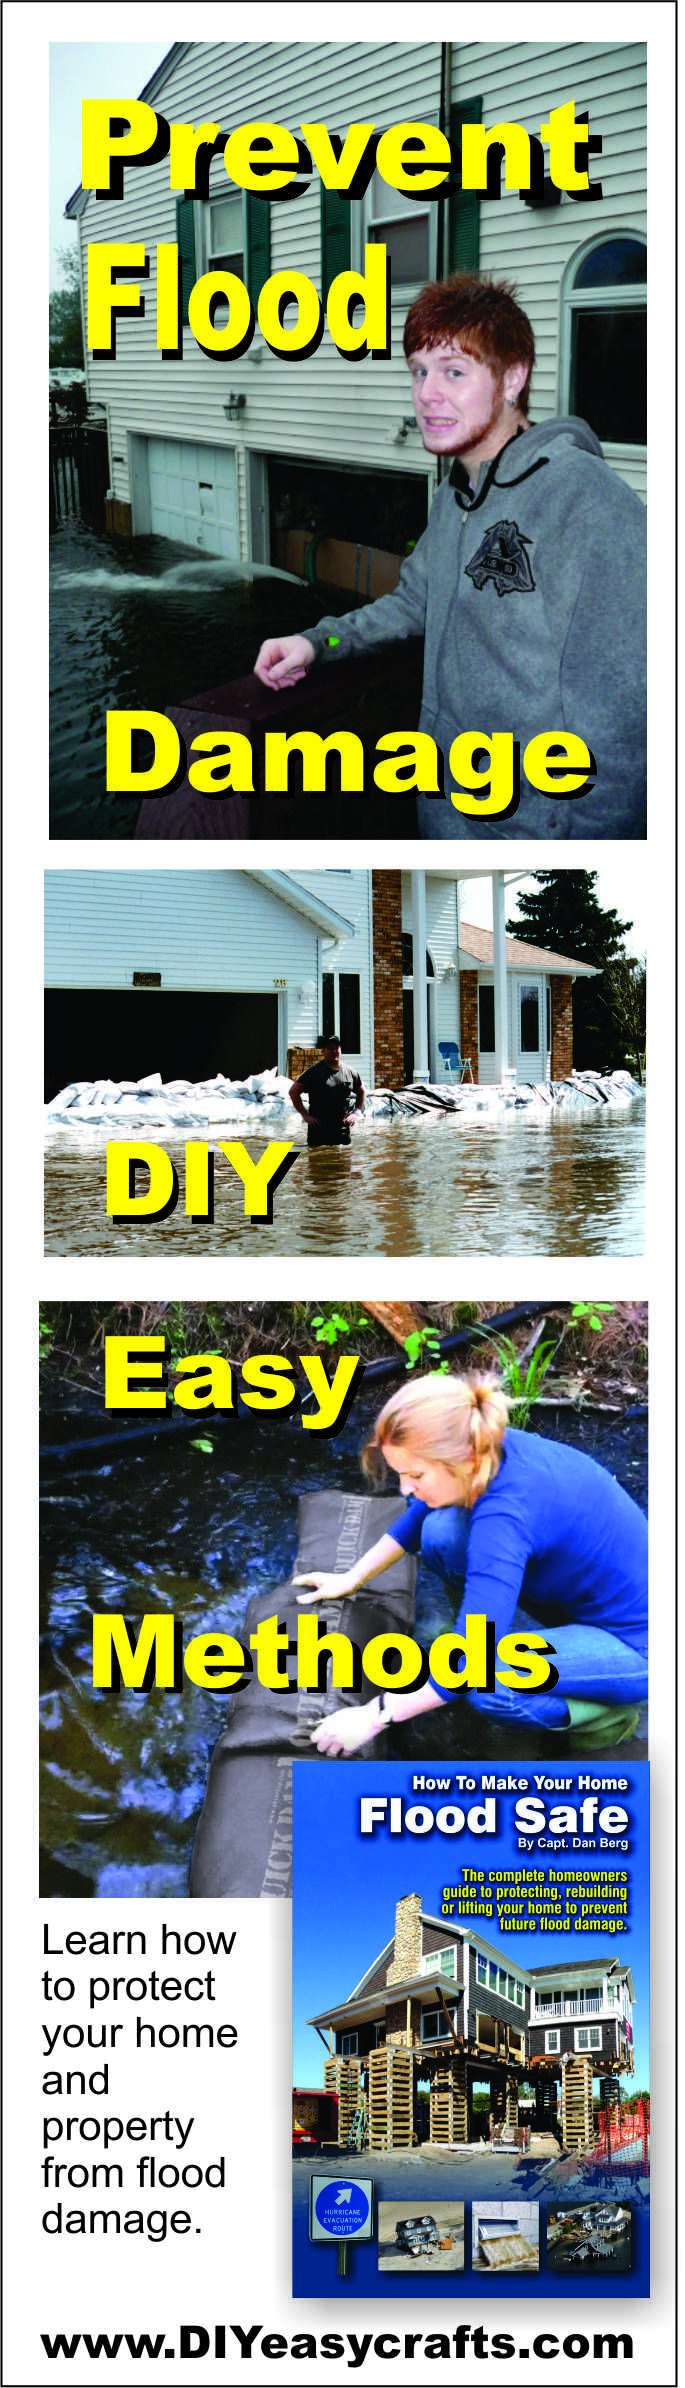 DIY Easy Methods to Protect Home and Property from Flood Damage. With a little advanced planning most homeowners can prevent flood damage to home and property with these easy DIY methods. http://www.diyeasycrafts.com/